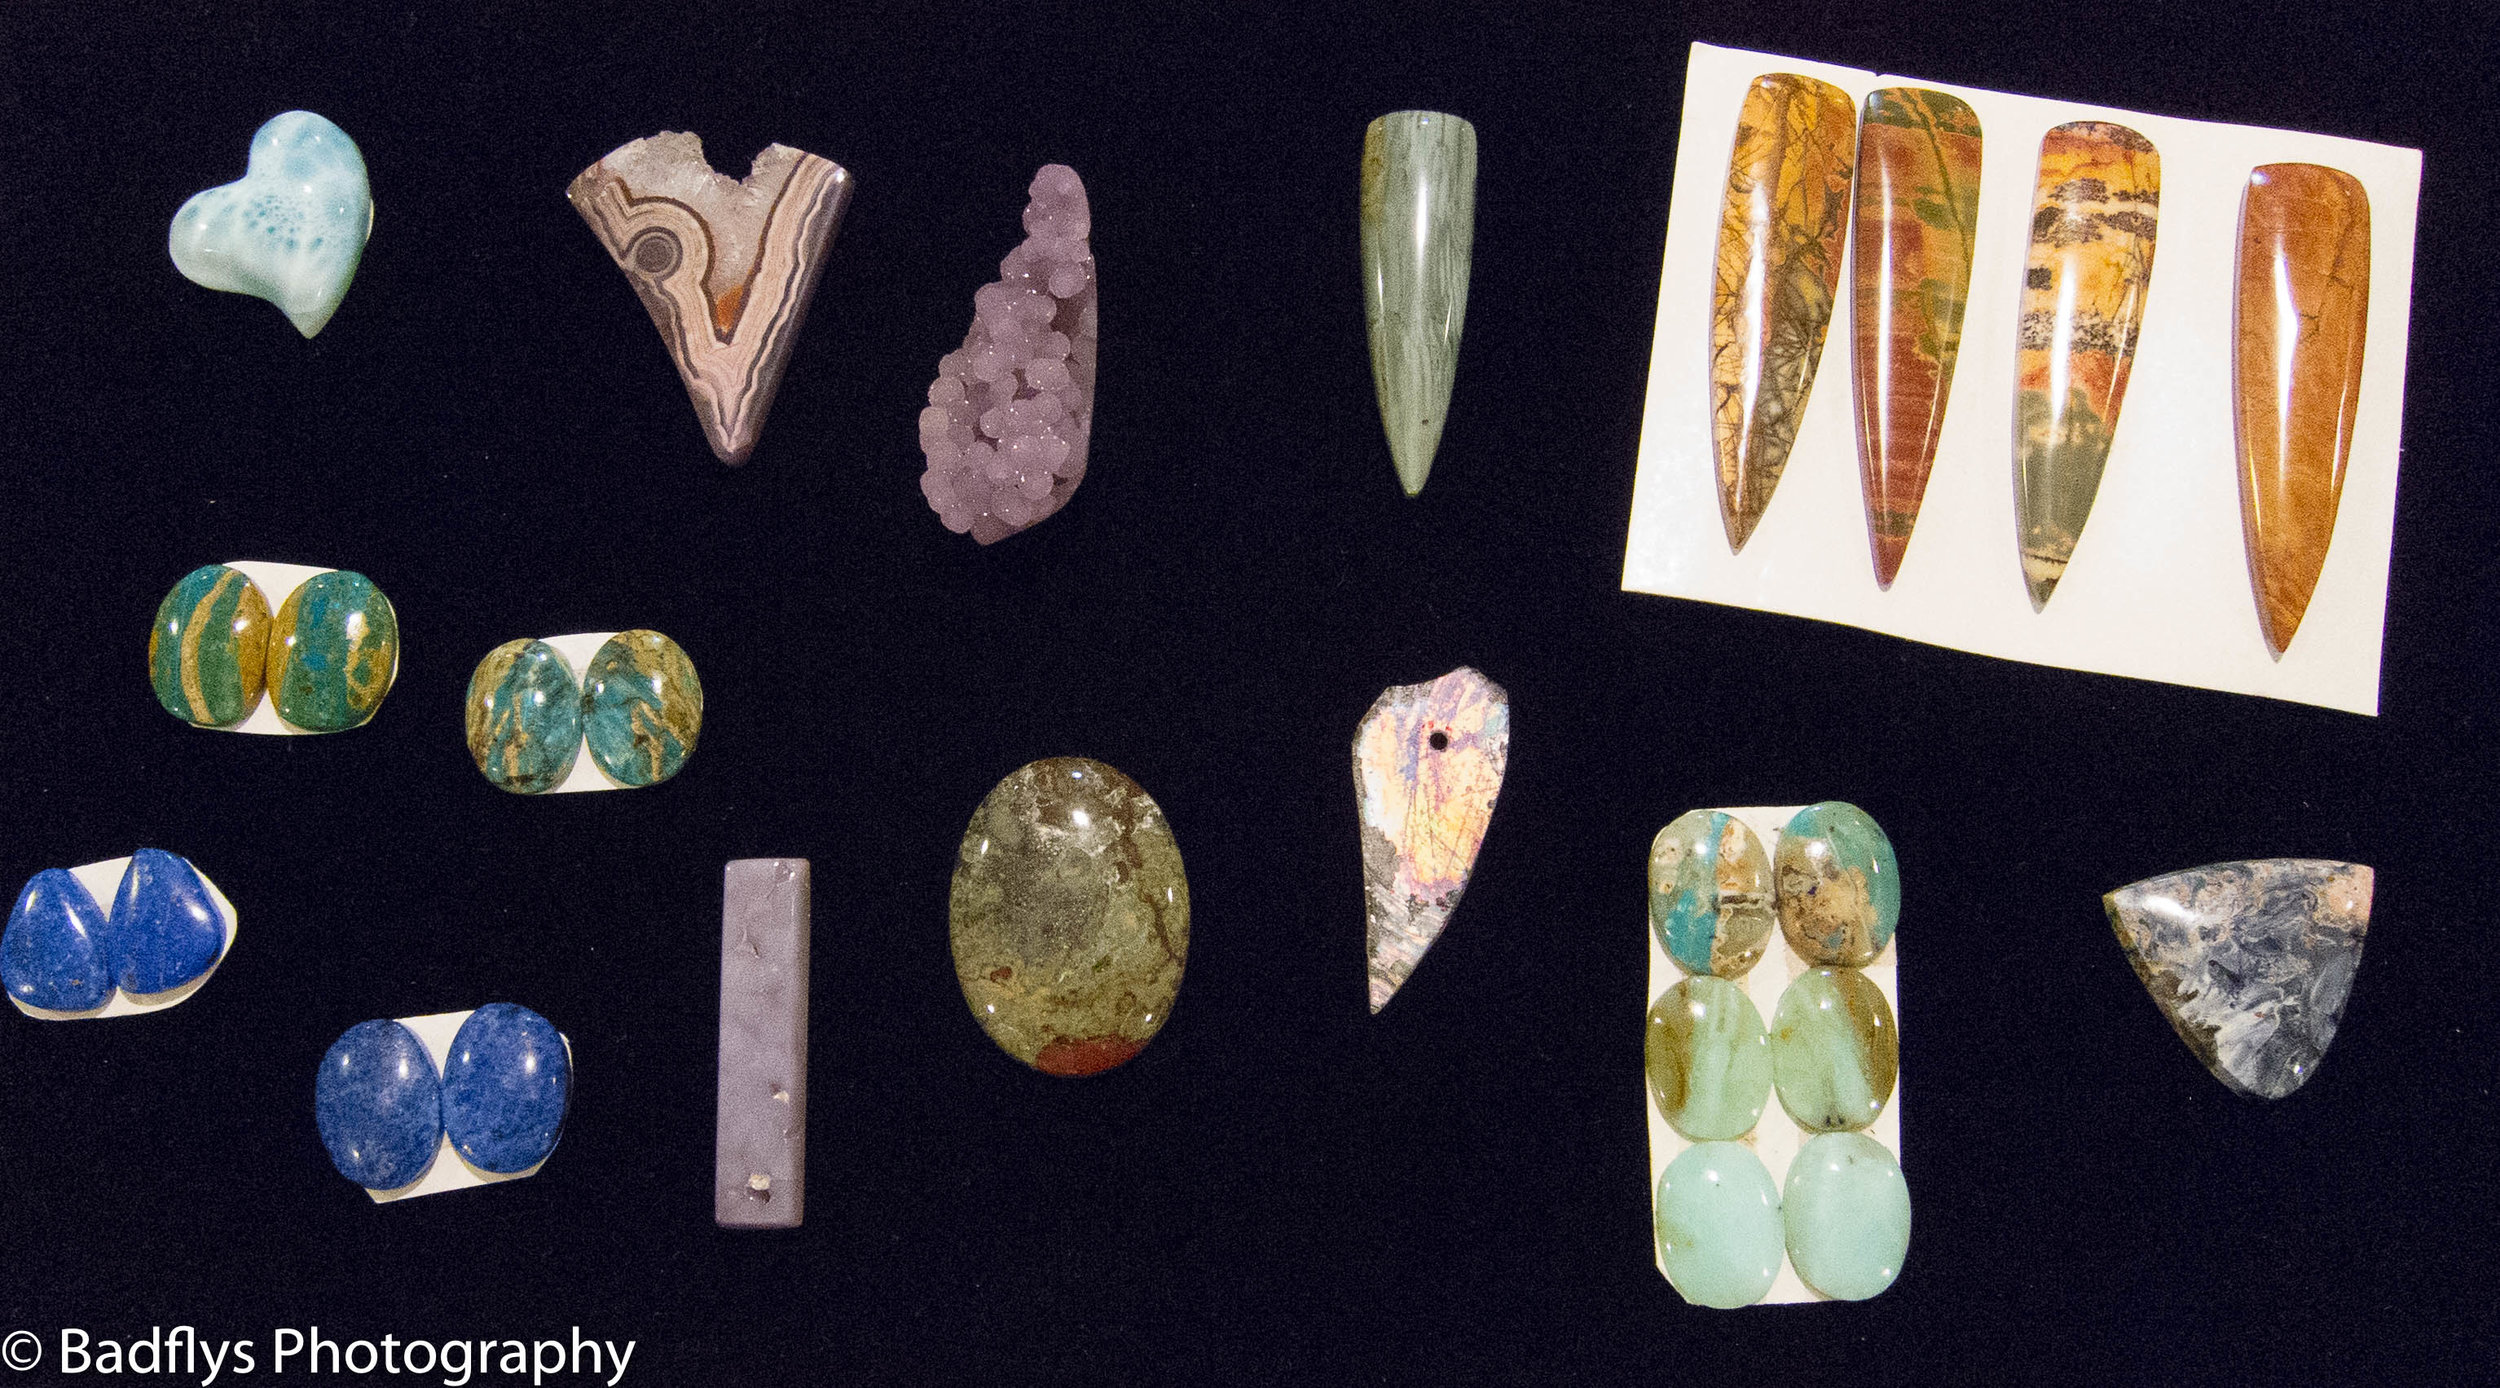 "Here is a selection of stones I've recently acquired. These will find their way into some new pieces I am creating. There's Larimar, Chrysocolla, Denim Lapis, Red Creek Jasper, Roman Glass, oh my! Had a lot of fun at the Denver Gem shows this September. Now I just have to ""get busy""!"